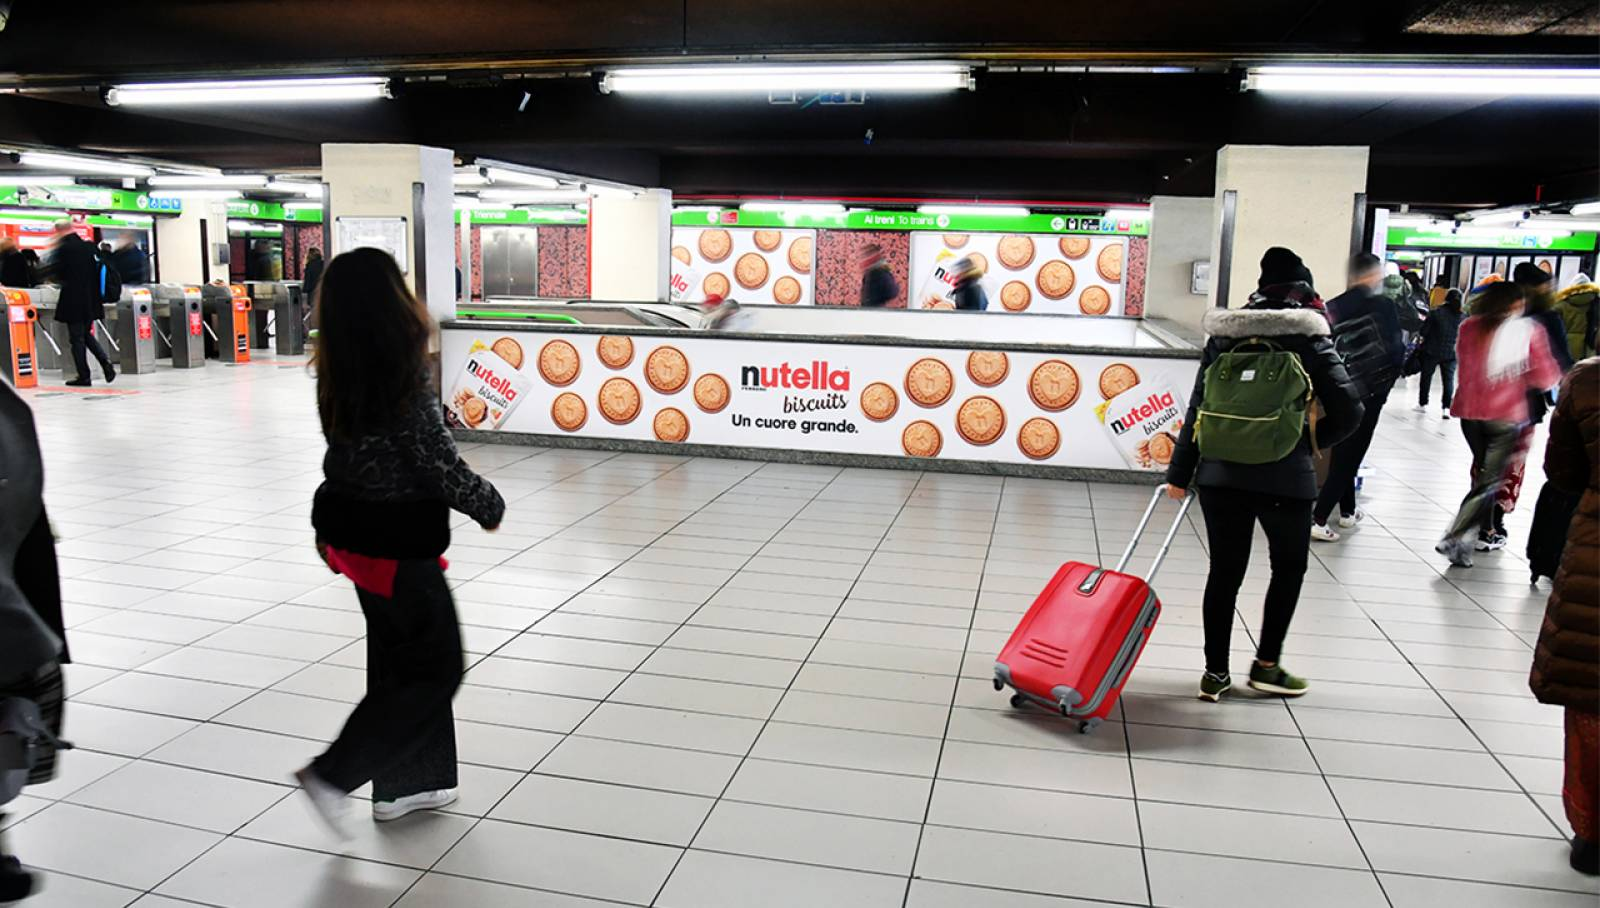 IGPDecaux Station Domination for Ferrero Nutella Biscuits in Milan